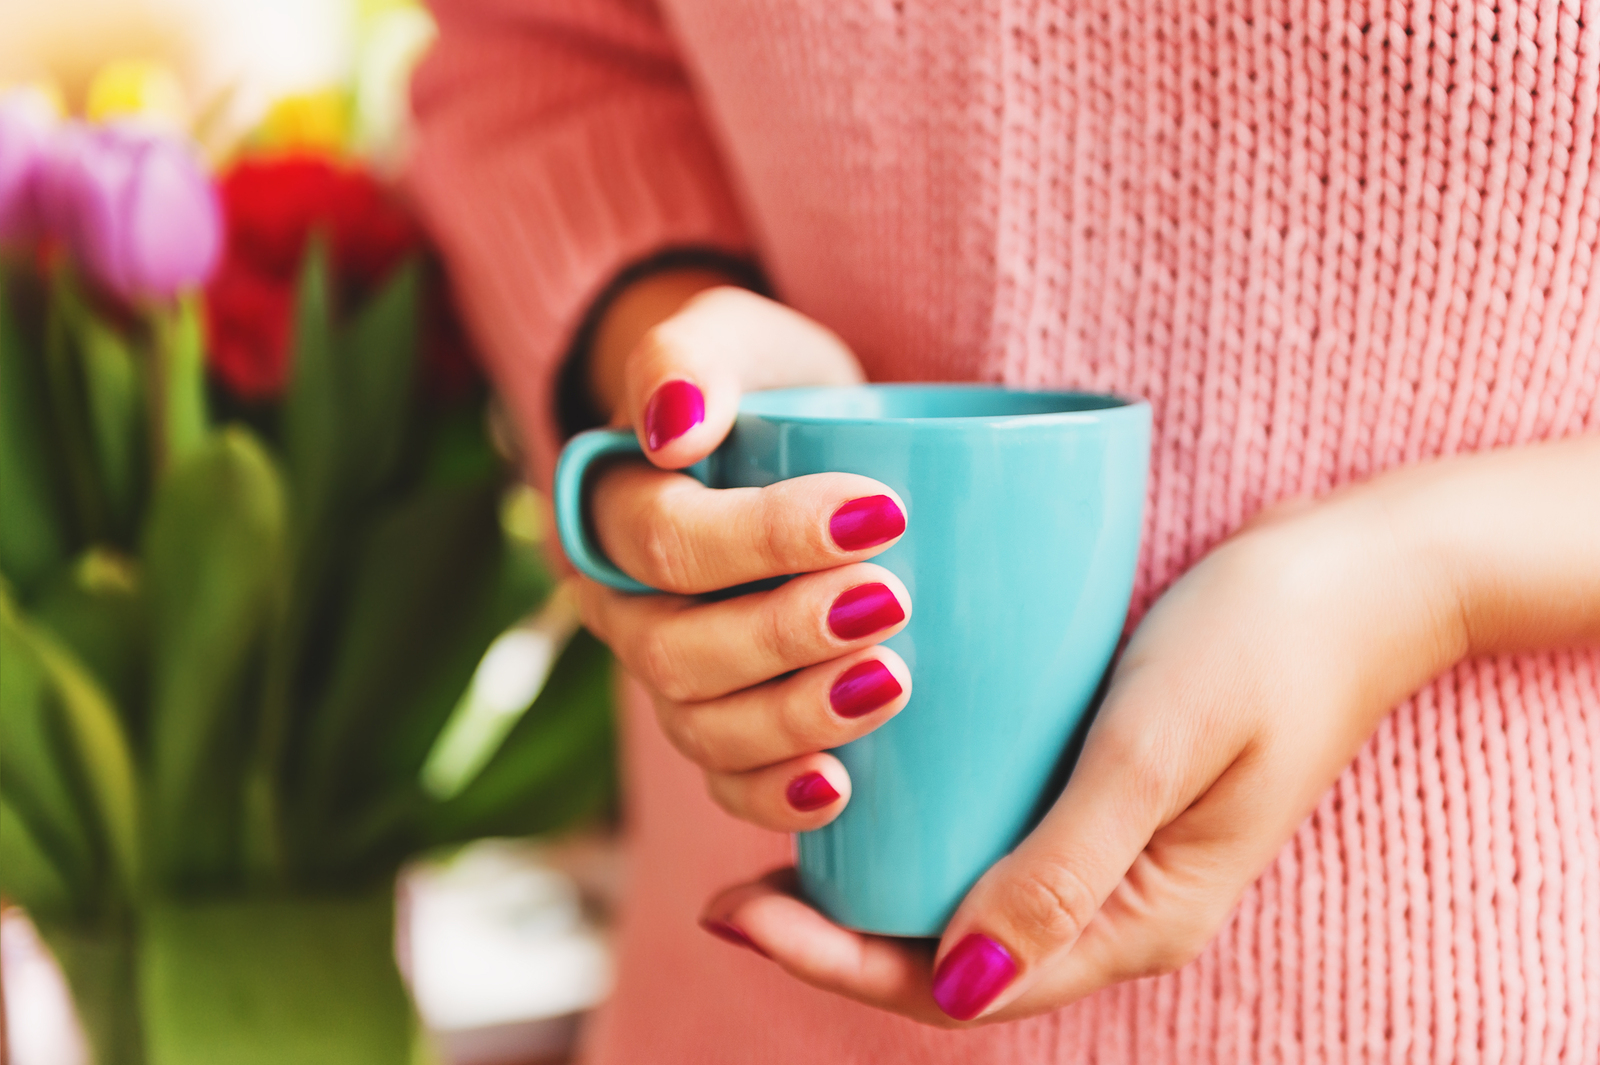 Cup of coffee in woman's hands with bright pink manicure